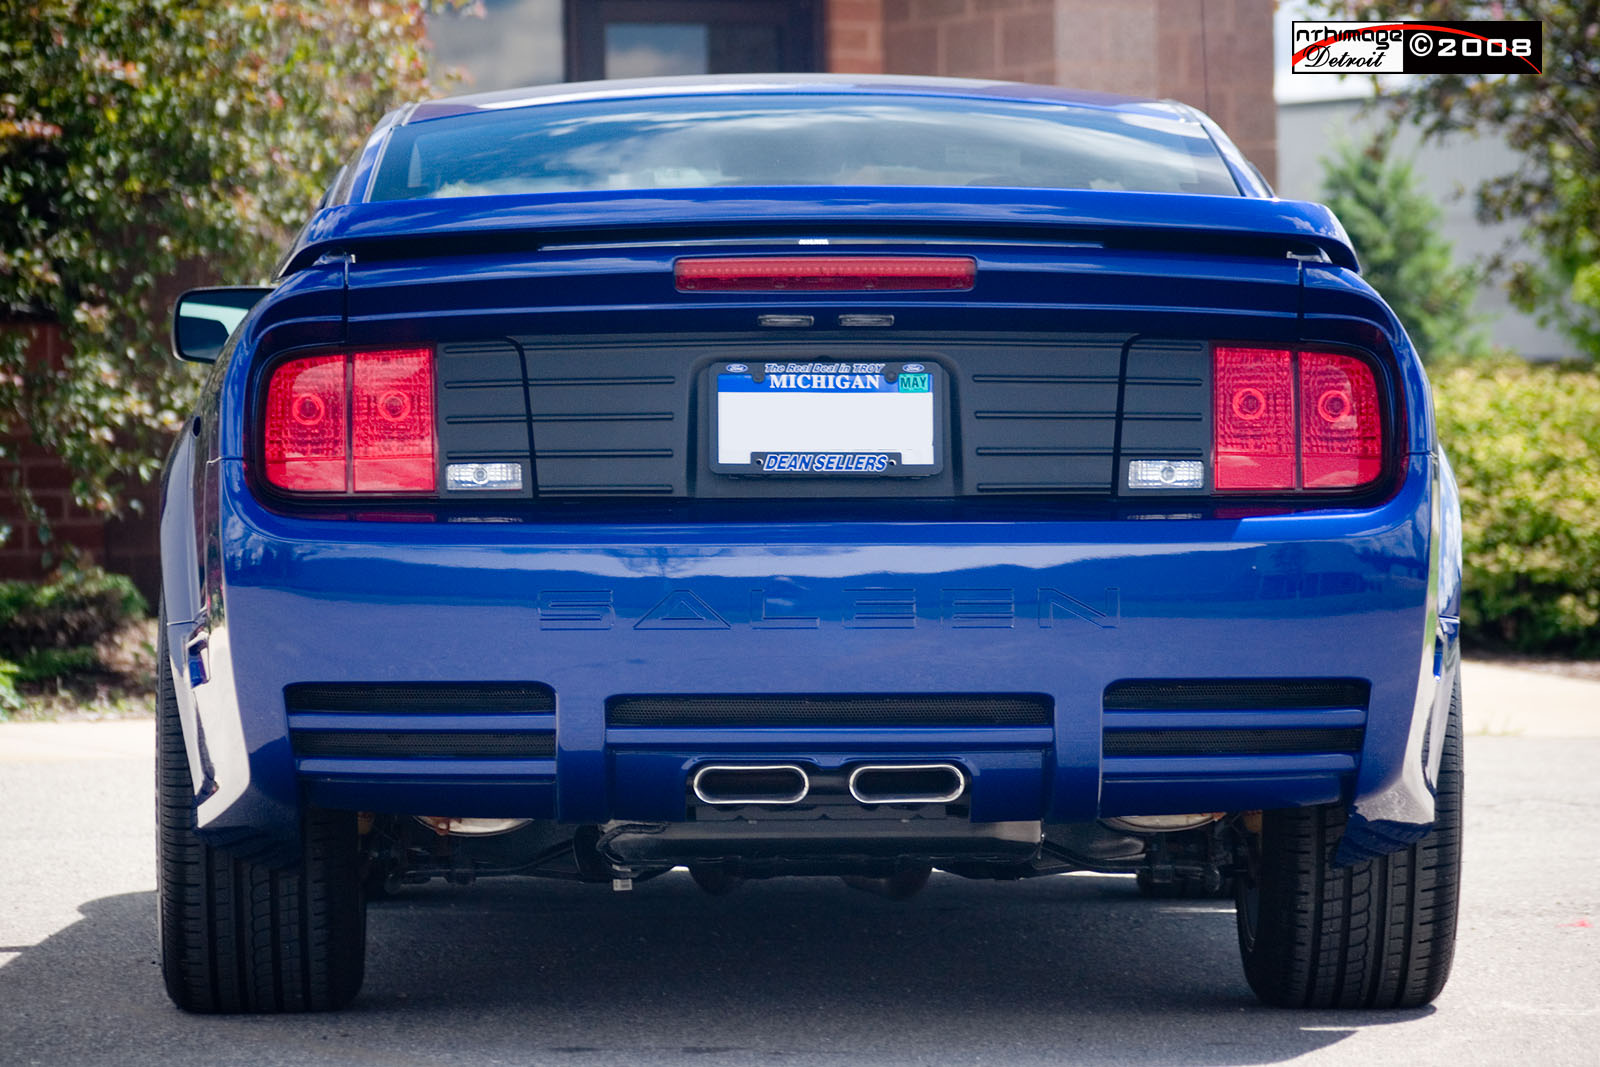 Ford Mustang S